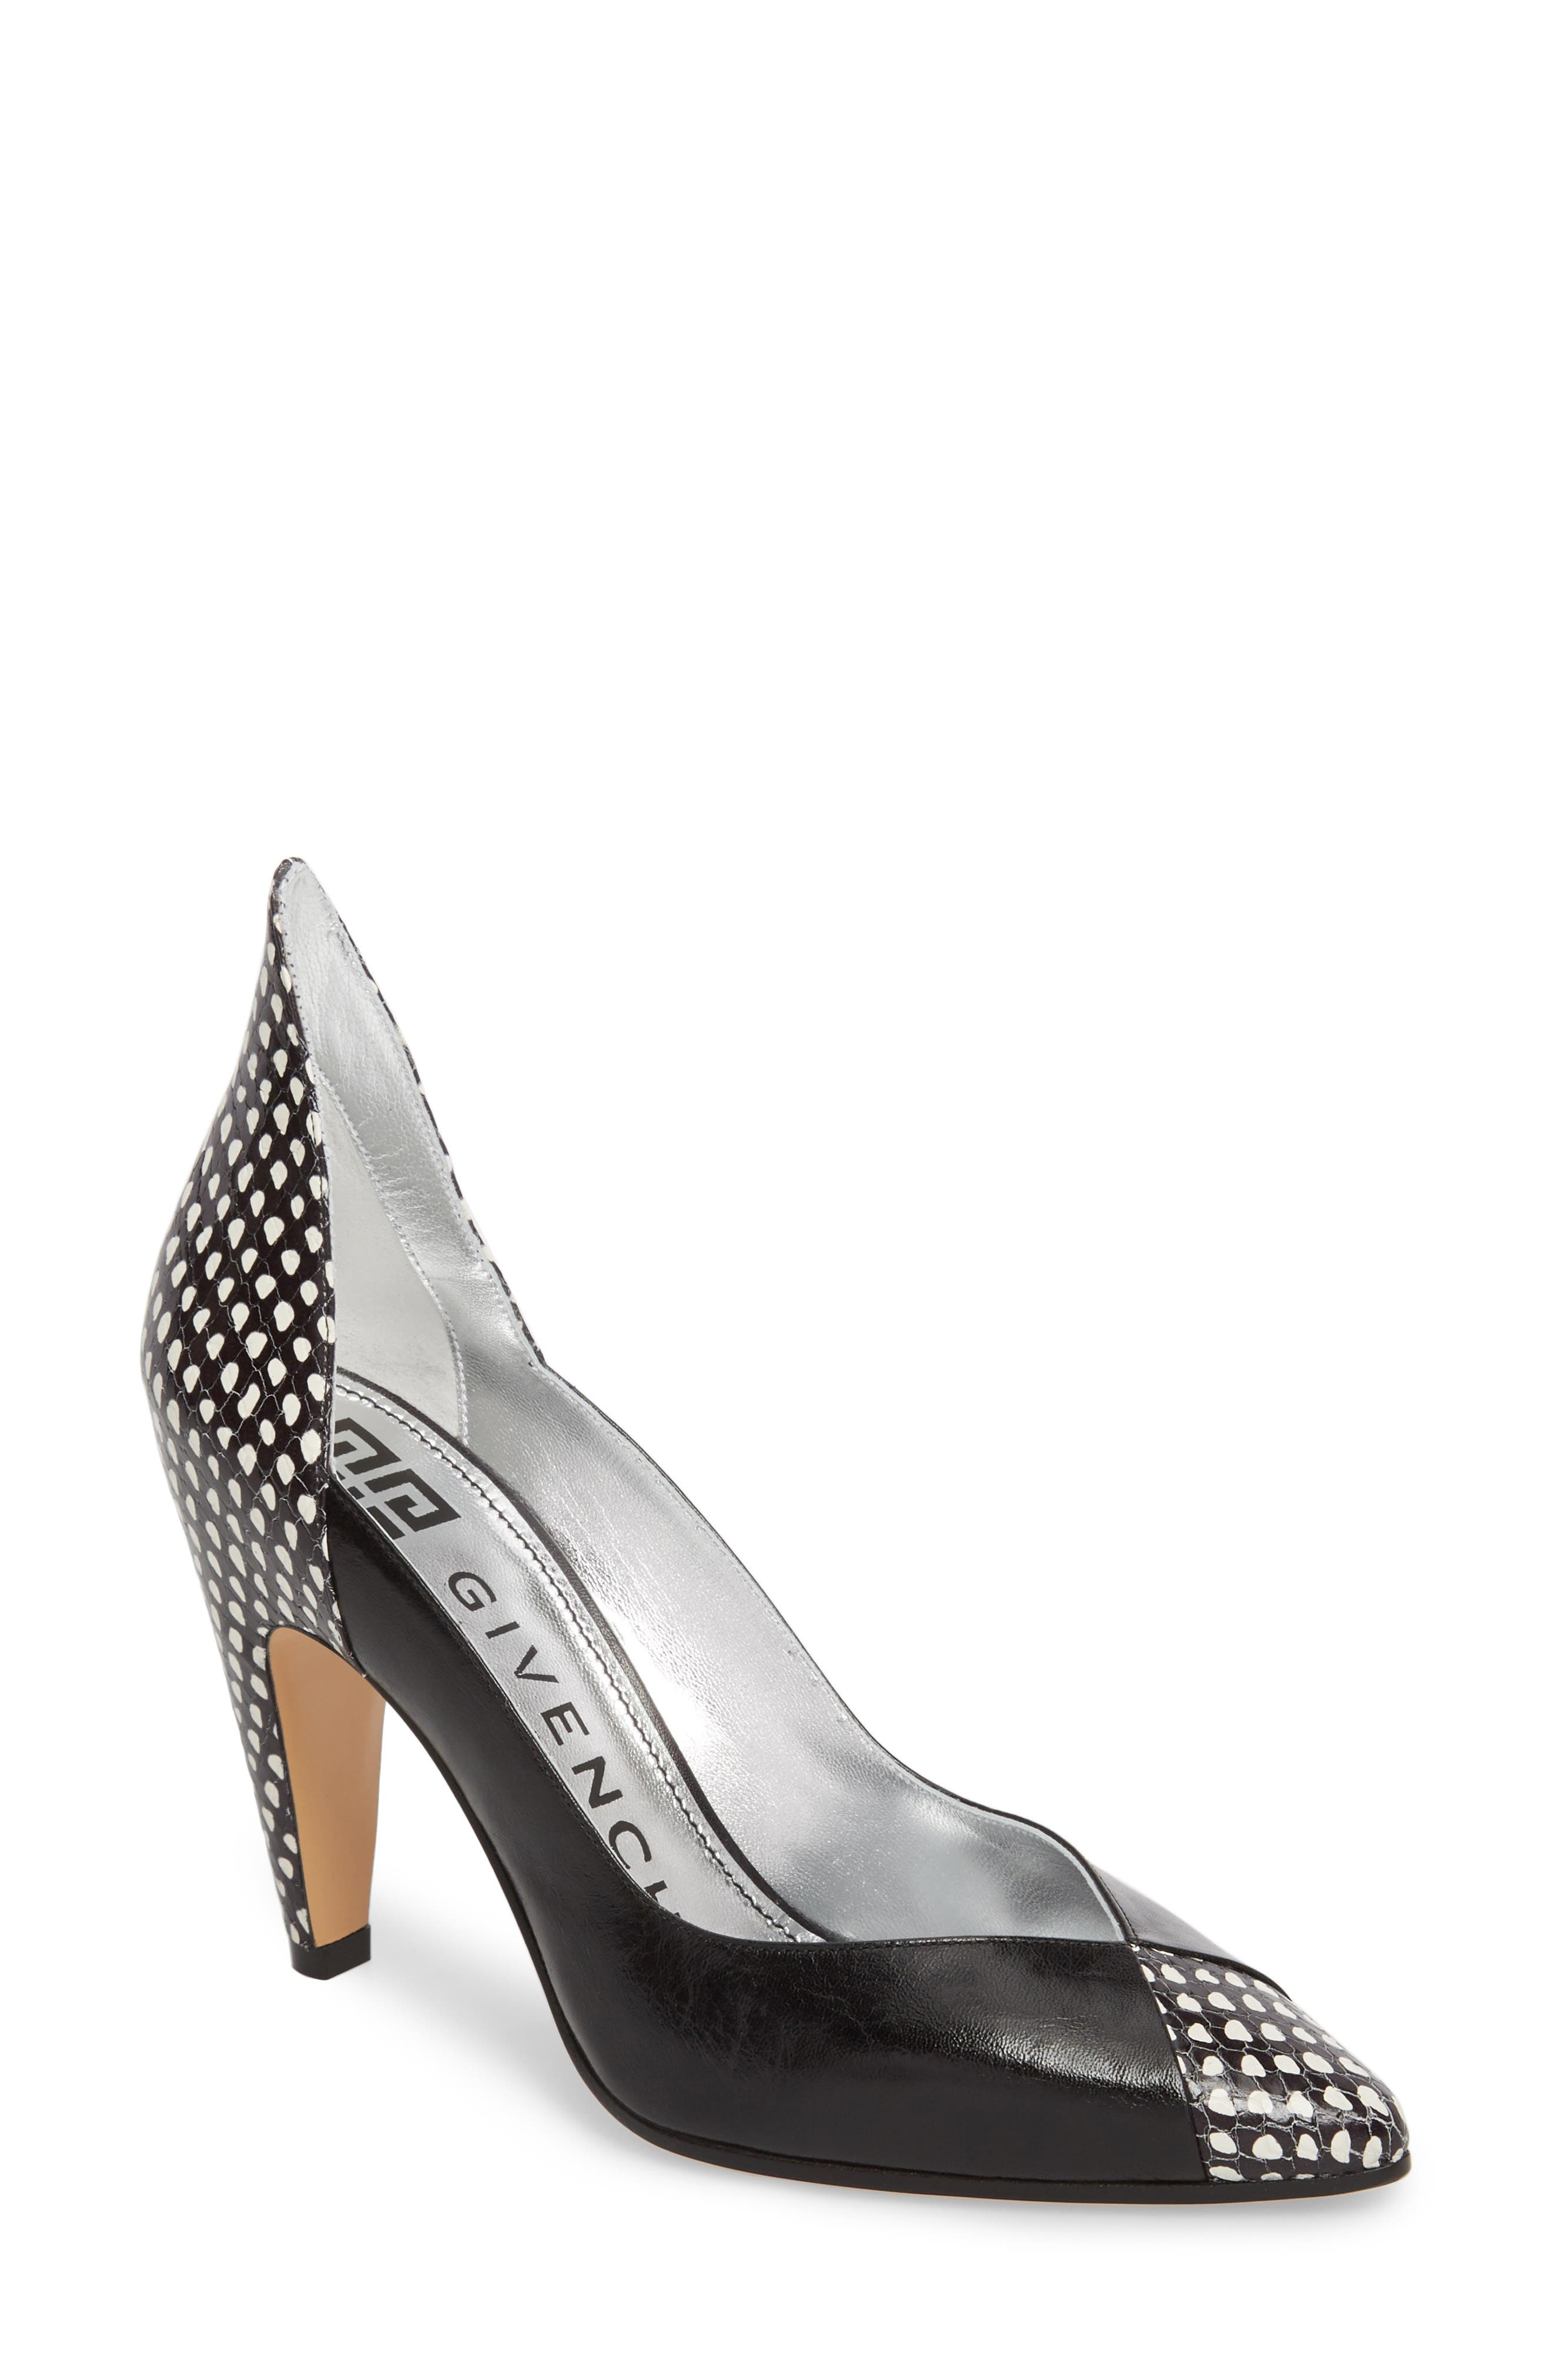 Kangaroo Leather Pointy Toe Pump,                             Main thumbnail 1, color,                             Black/ White